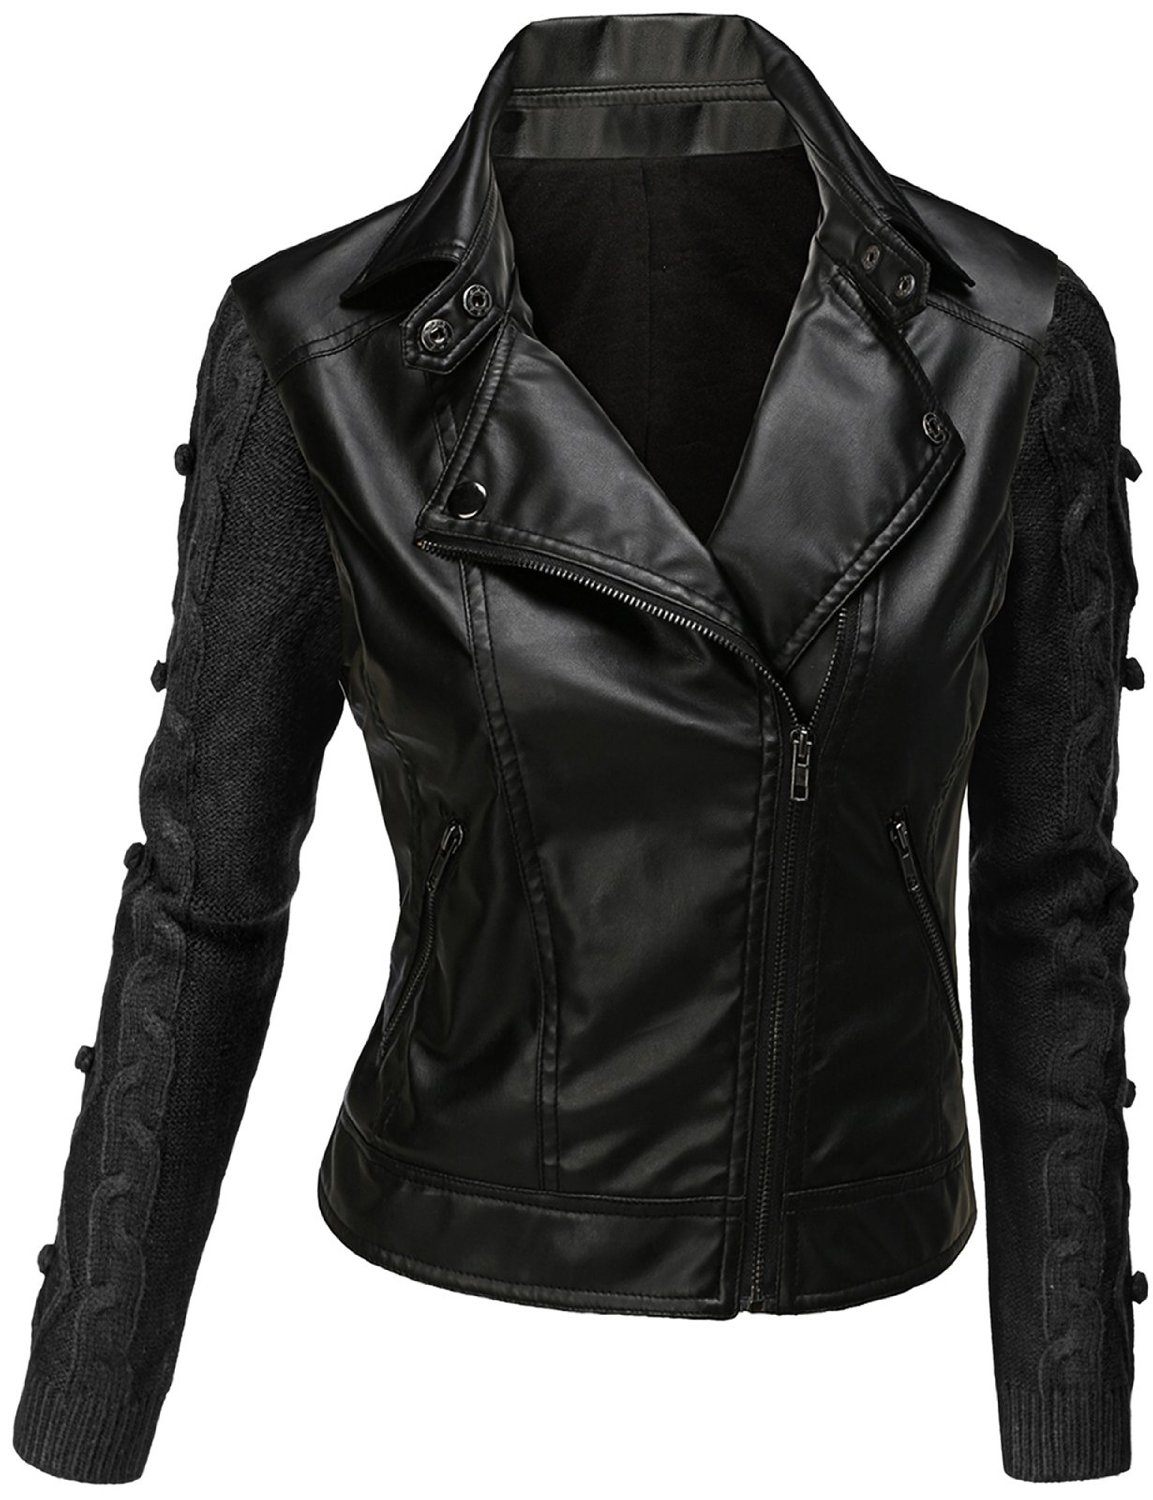 Urban Republic Womens Anorak Jacket Winter Parka. 1 Review. Quick View Excelled Women's Black Lambskin Leather Hipster Jacket. 19 Reviews. Free 2 Day Delivery. Related Searches: L Jackets Black Jackets XL Jackets M Jackets Hooded Jackets. Did .